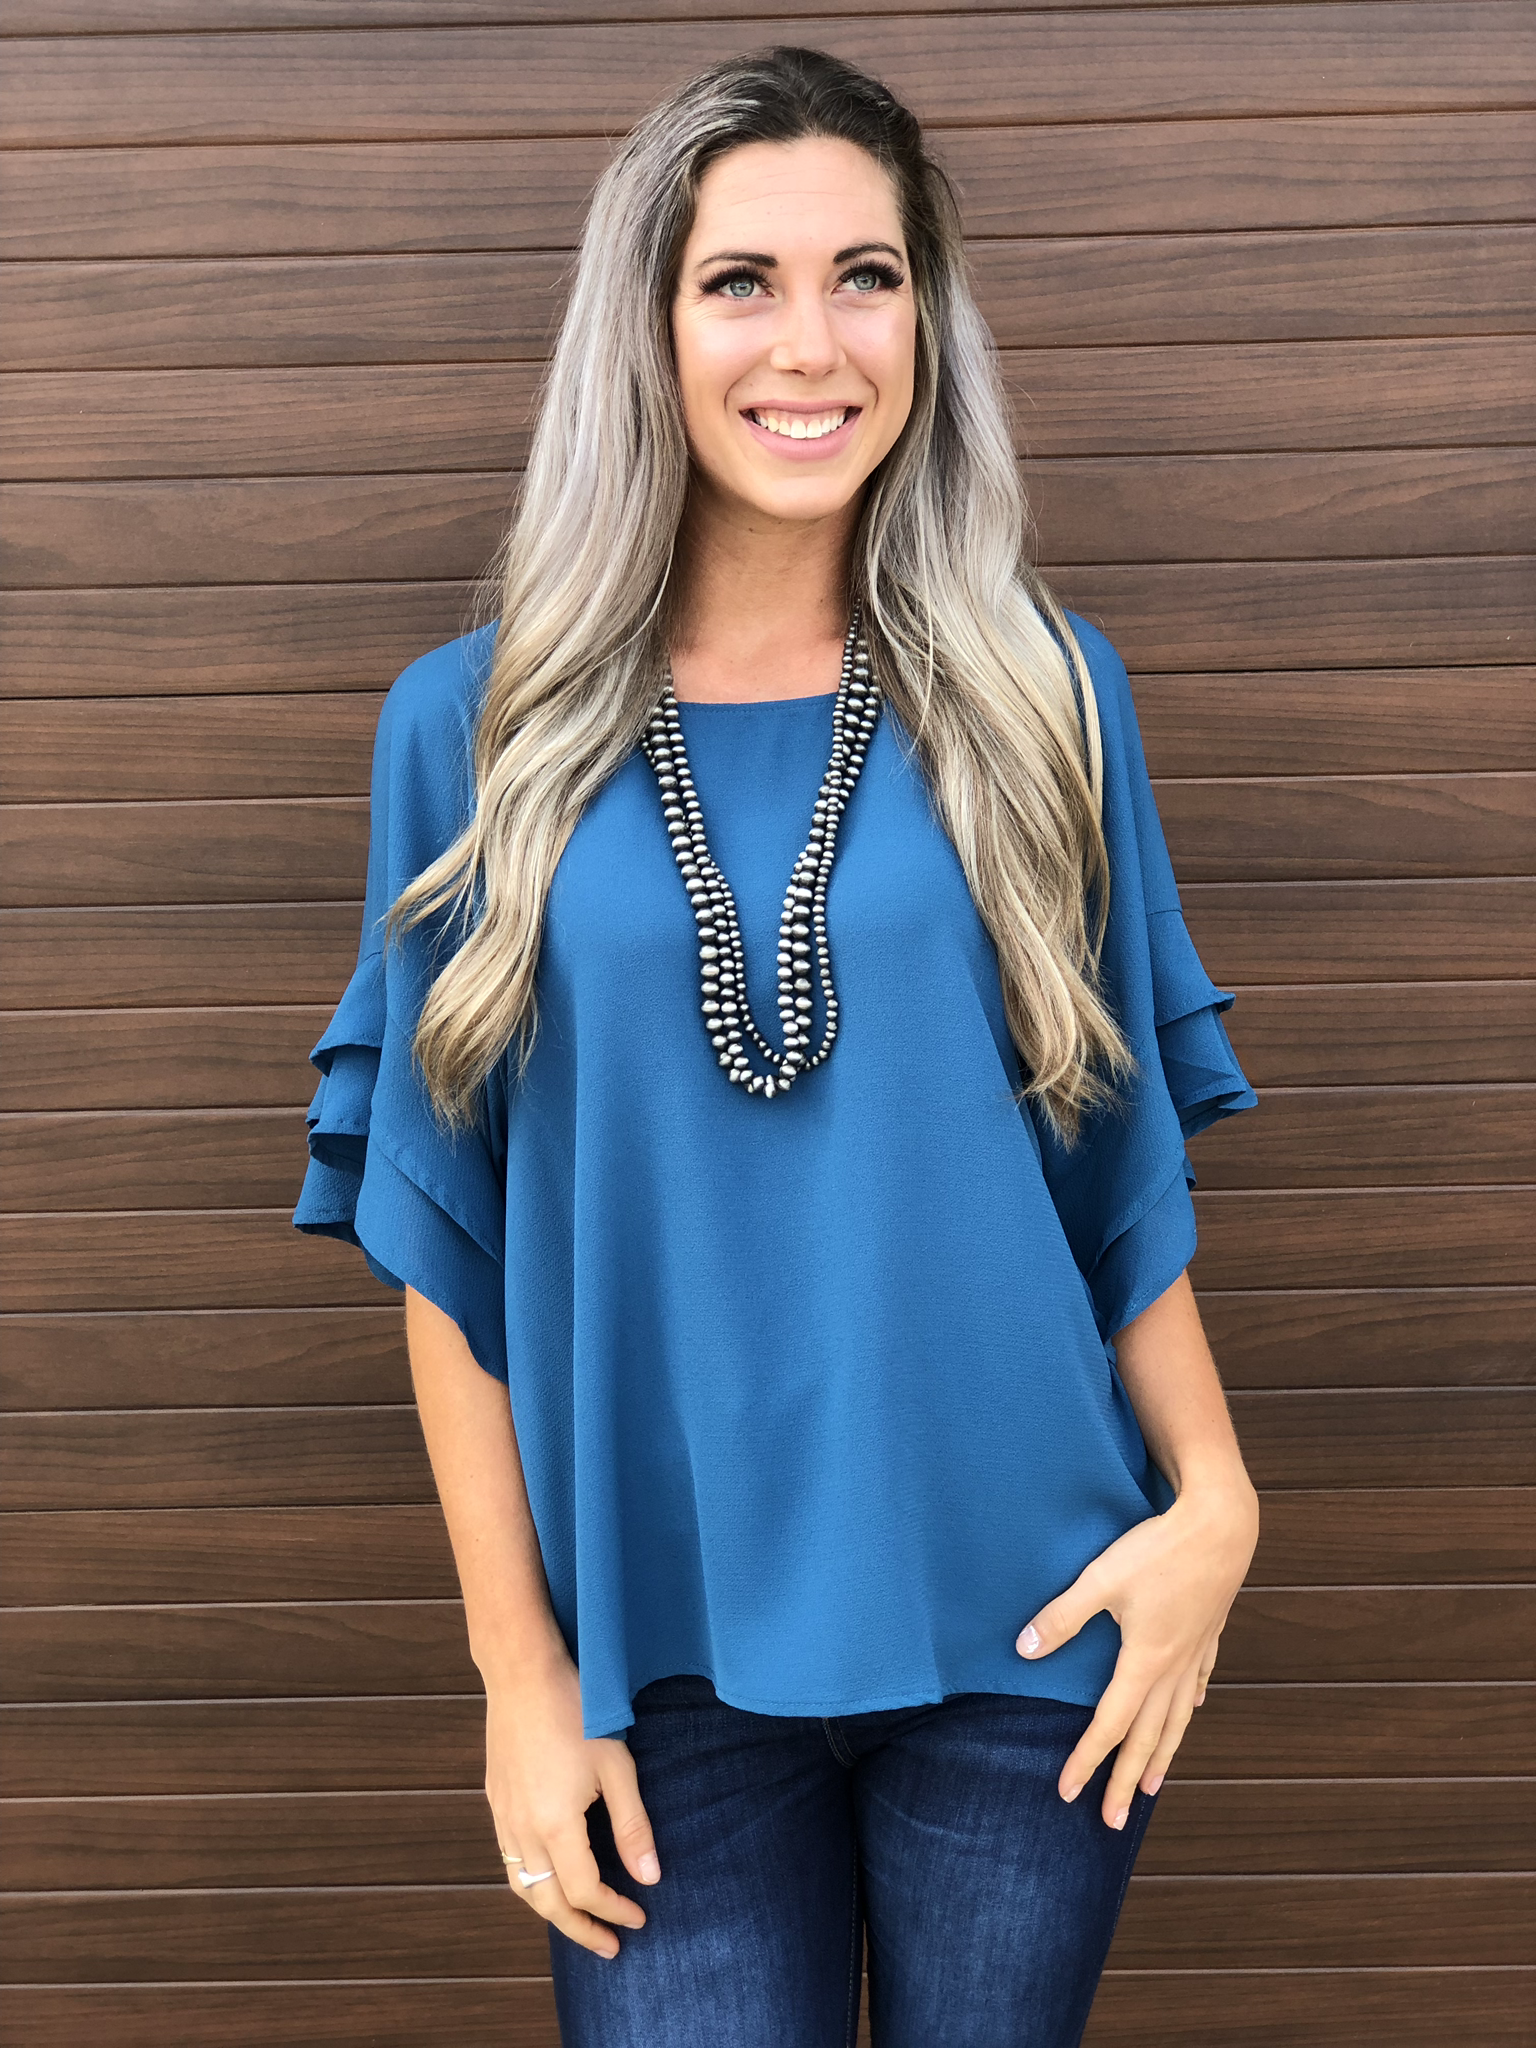 The Kelowna Shift Ruffle Top - Teal 83336